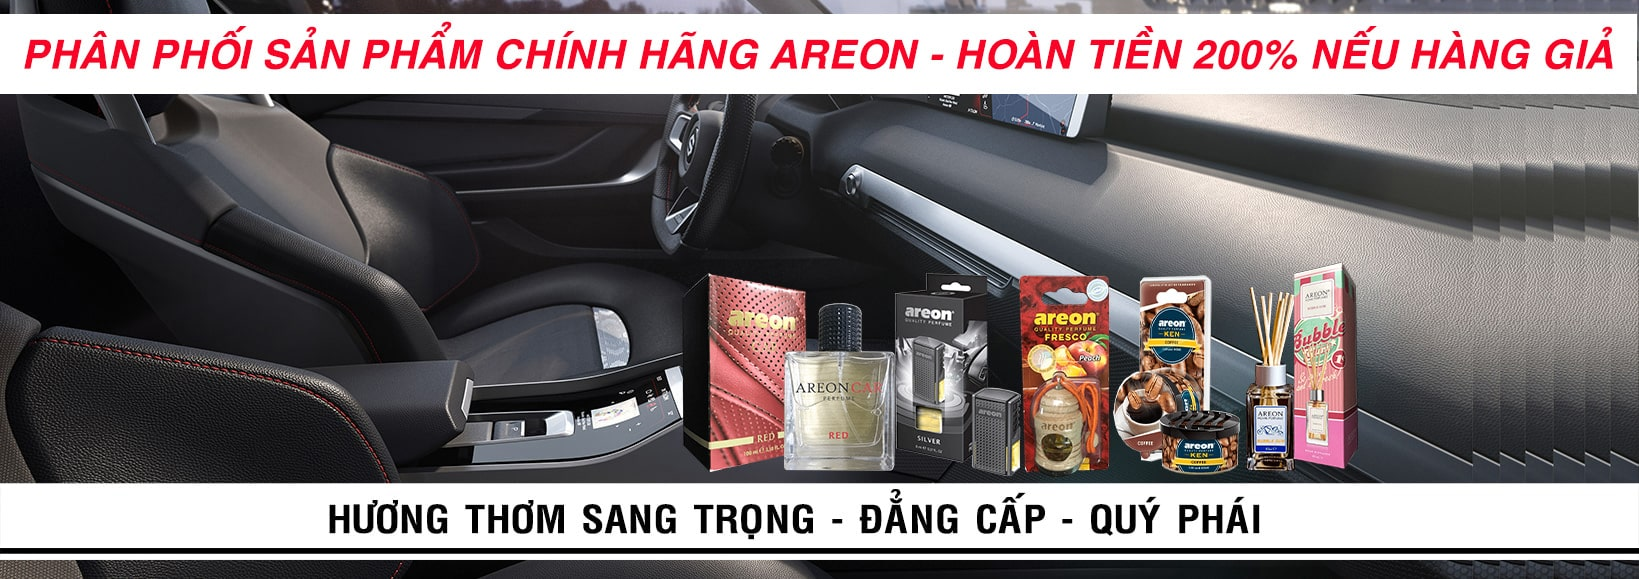 nuoc hoa o to areon dong hanh cung hang xe vinfast